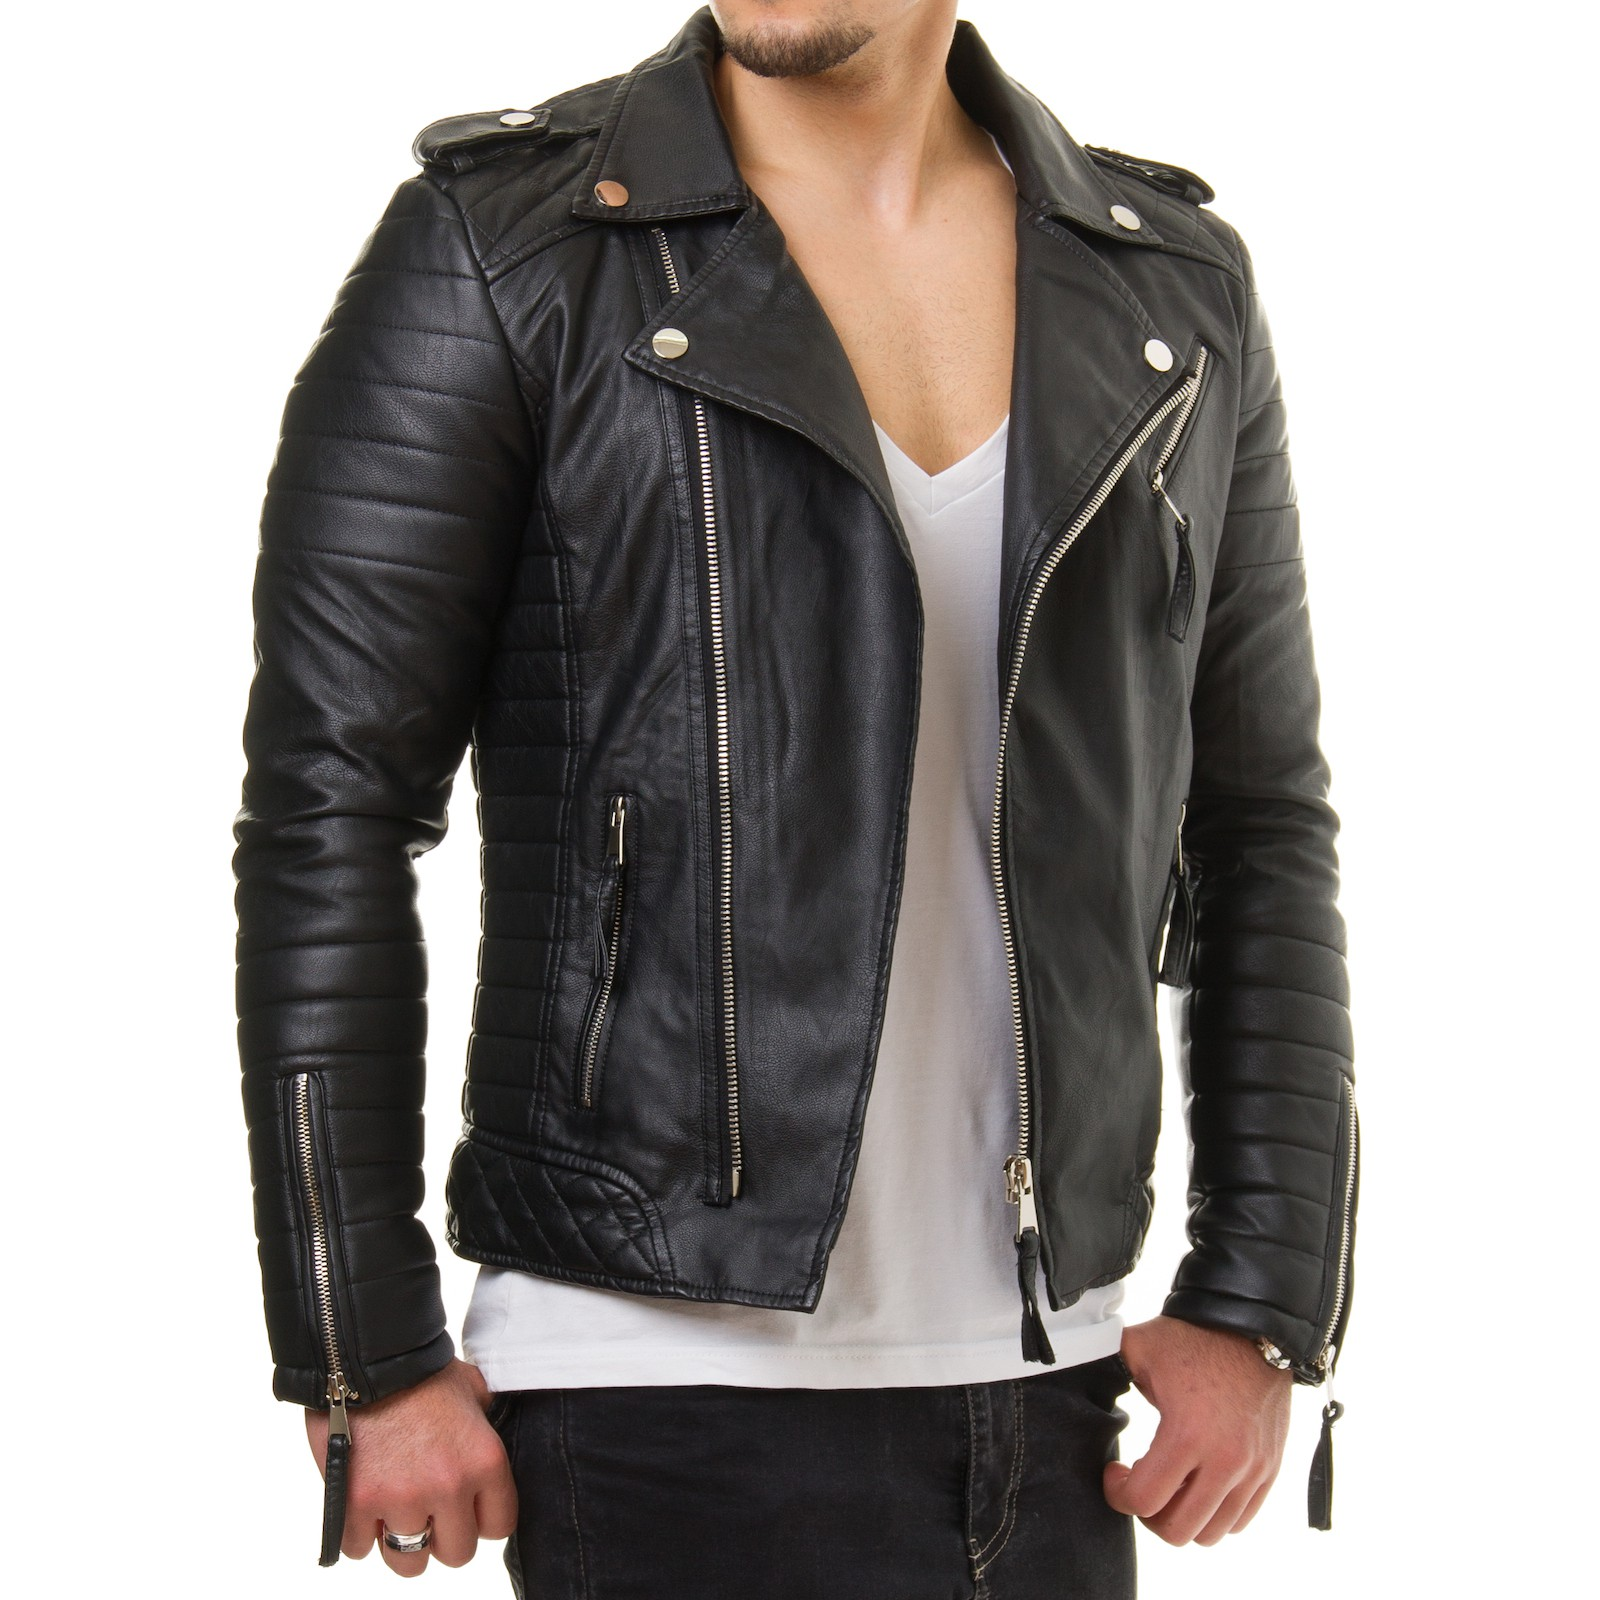 A good biker jacket is the ultimate investment piece, and no closet is complete without one. Real leathers are butter-soft, while faux leather and PU styles come with added edge. Our new season styles range feature extra details like fur trims, luxe suede finishes and embroidery for a modern update.